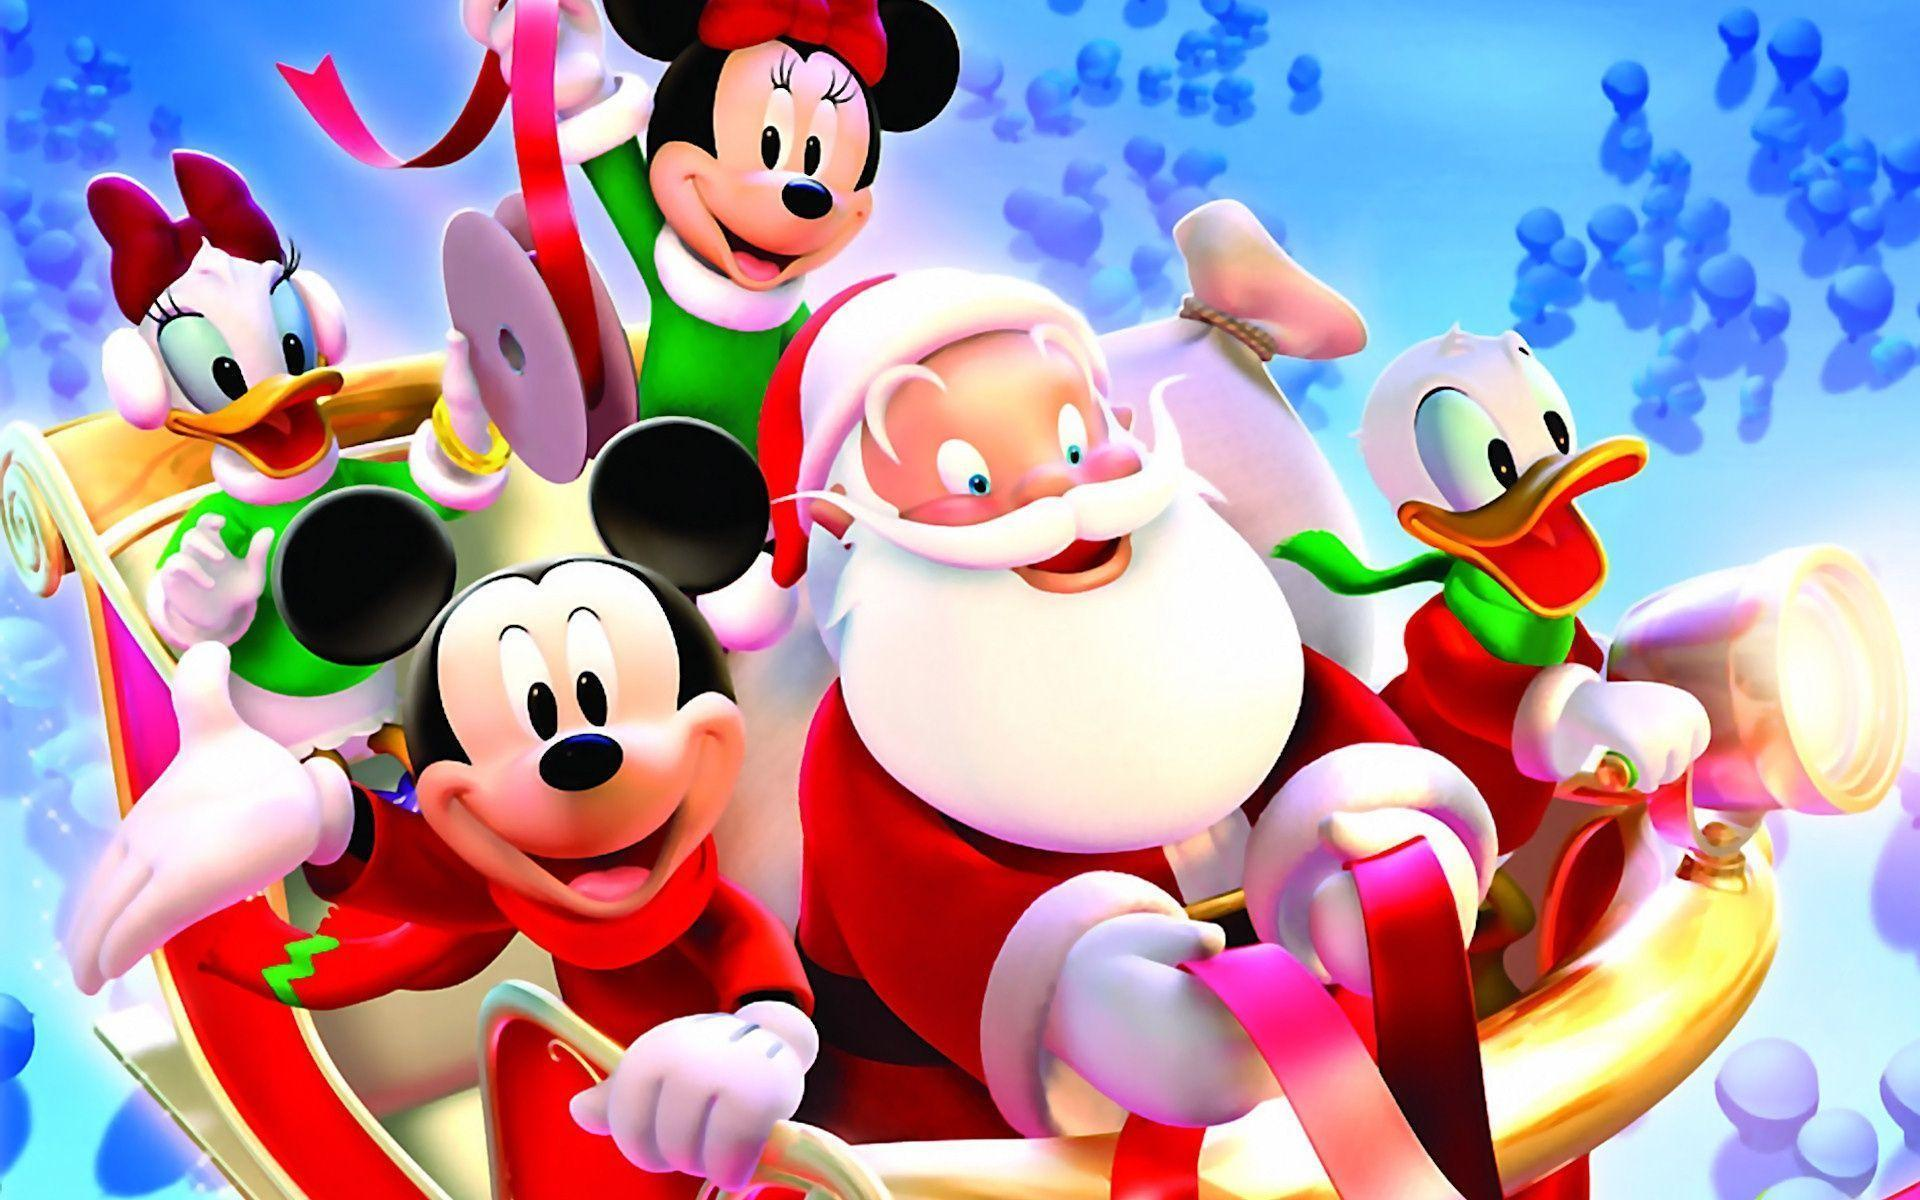 Disney Christmas Wallpapers - Full HD wallpaper search - page 6